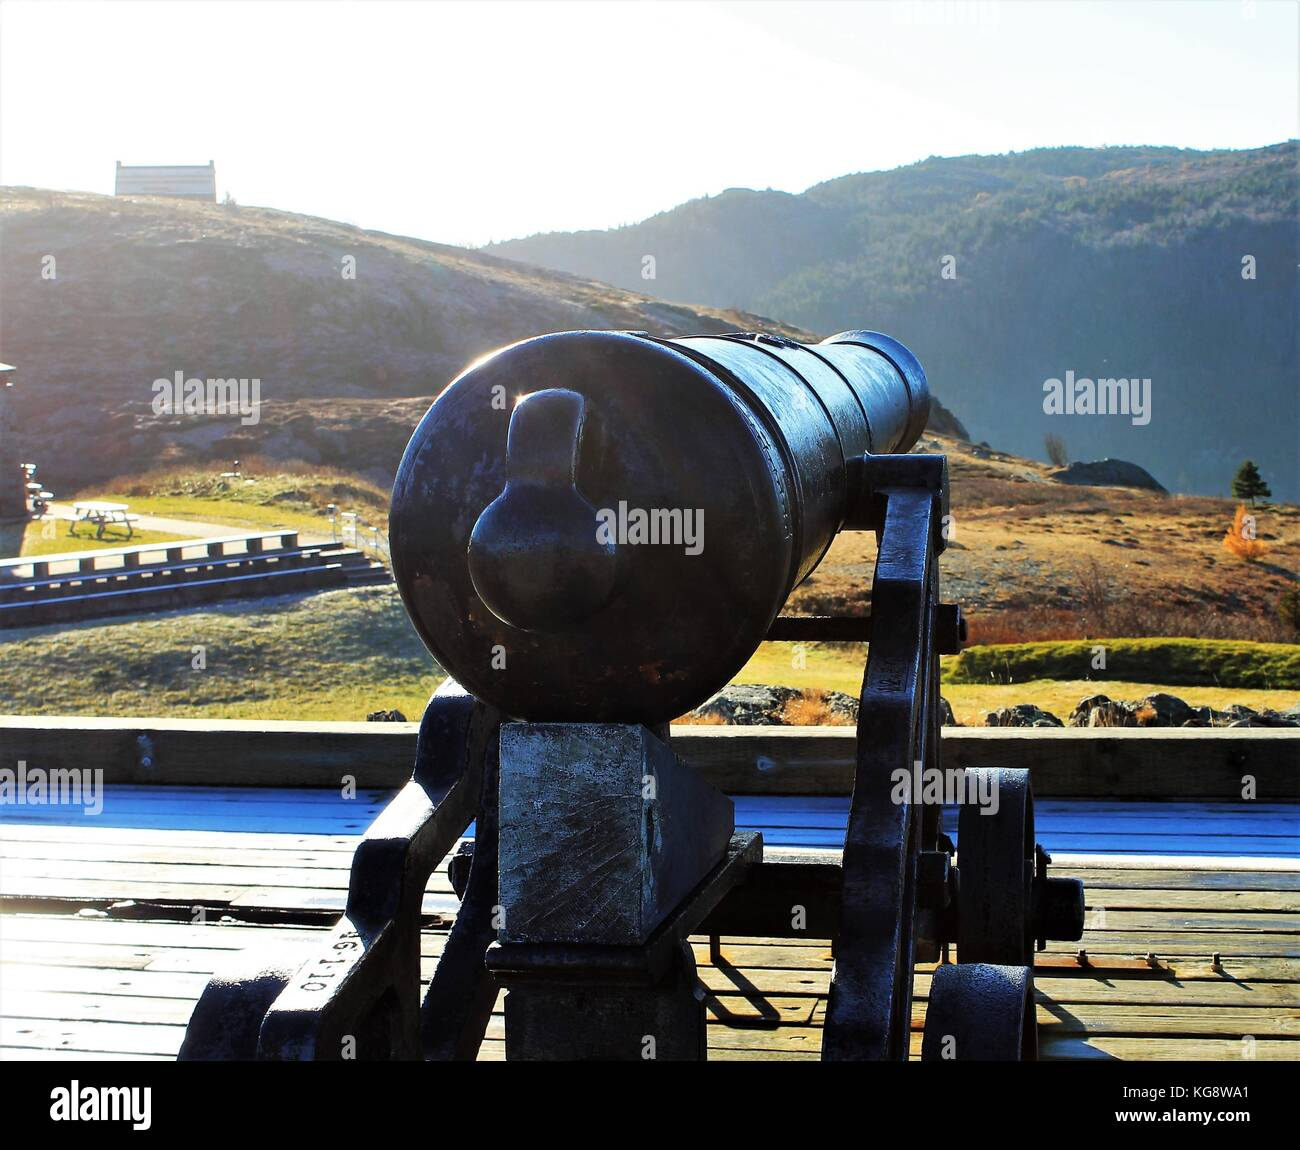 Cannon on Signal Hill, St. John's, Newfoundland and Labrador, Canada. Sun reflecting of the barrel, frost on - Stock Image